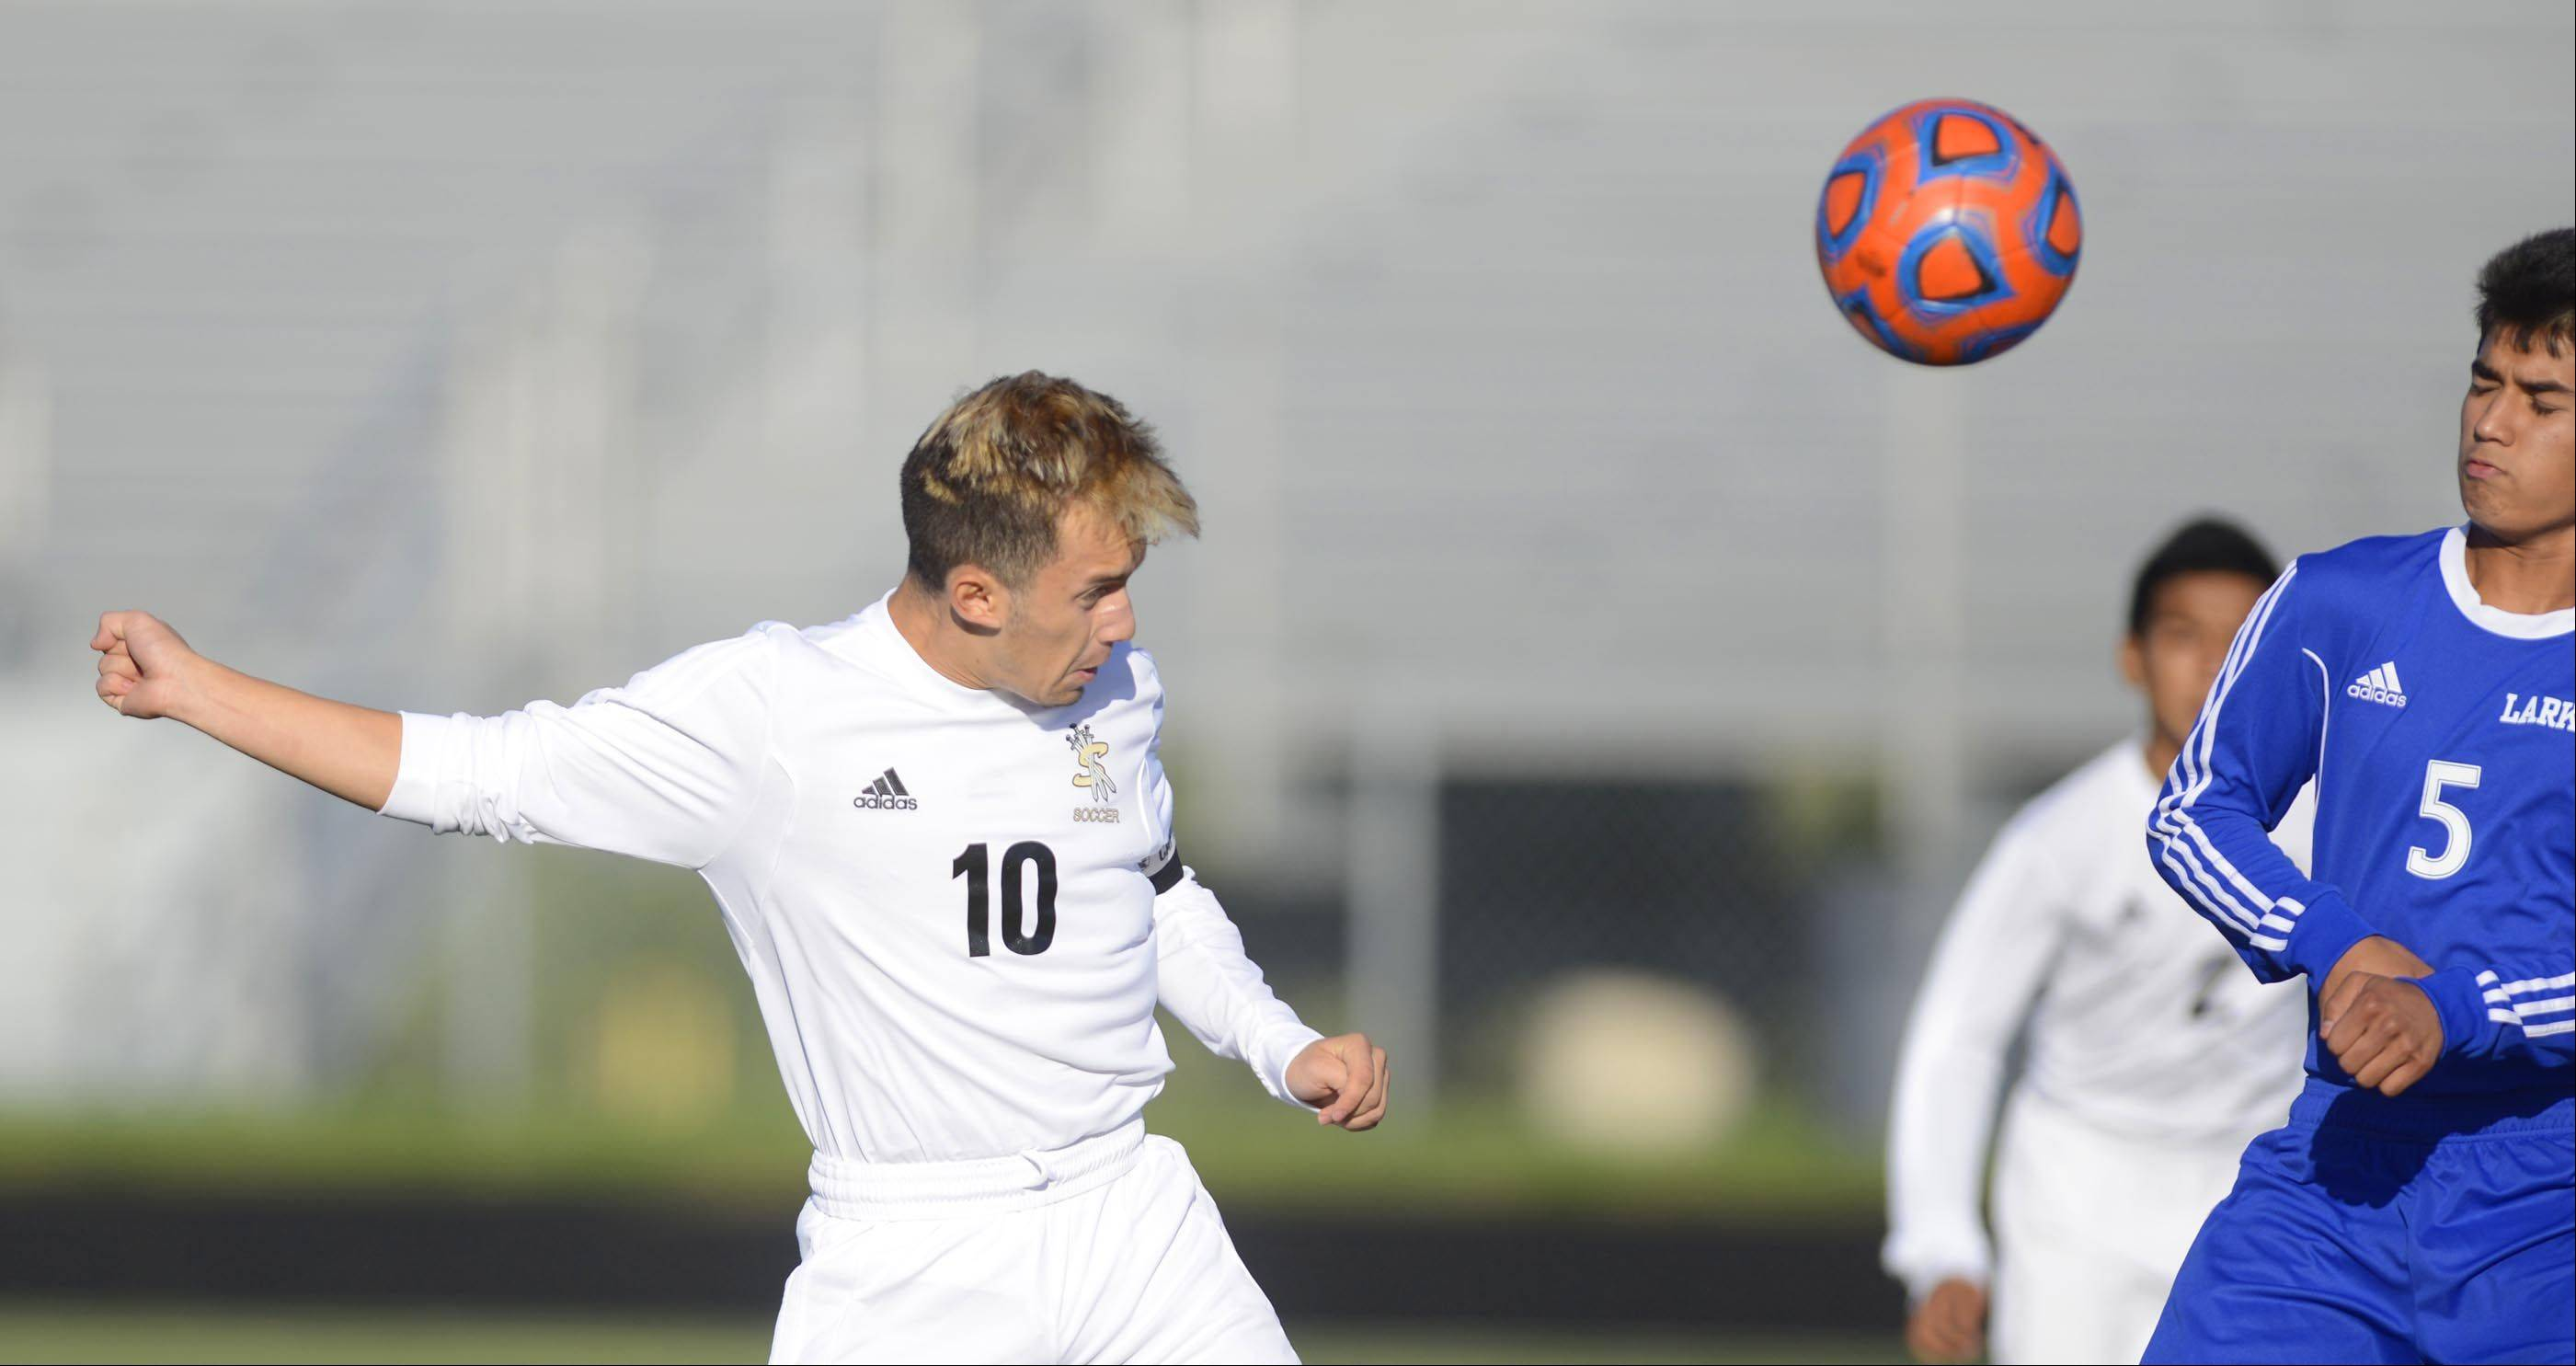 Streamwood's Nestor Ascencio redirects a corner kick but misses the net against Larkin Monday in Streamwood.